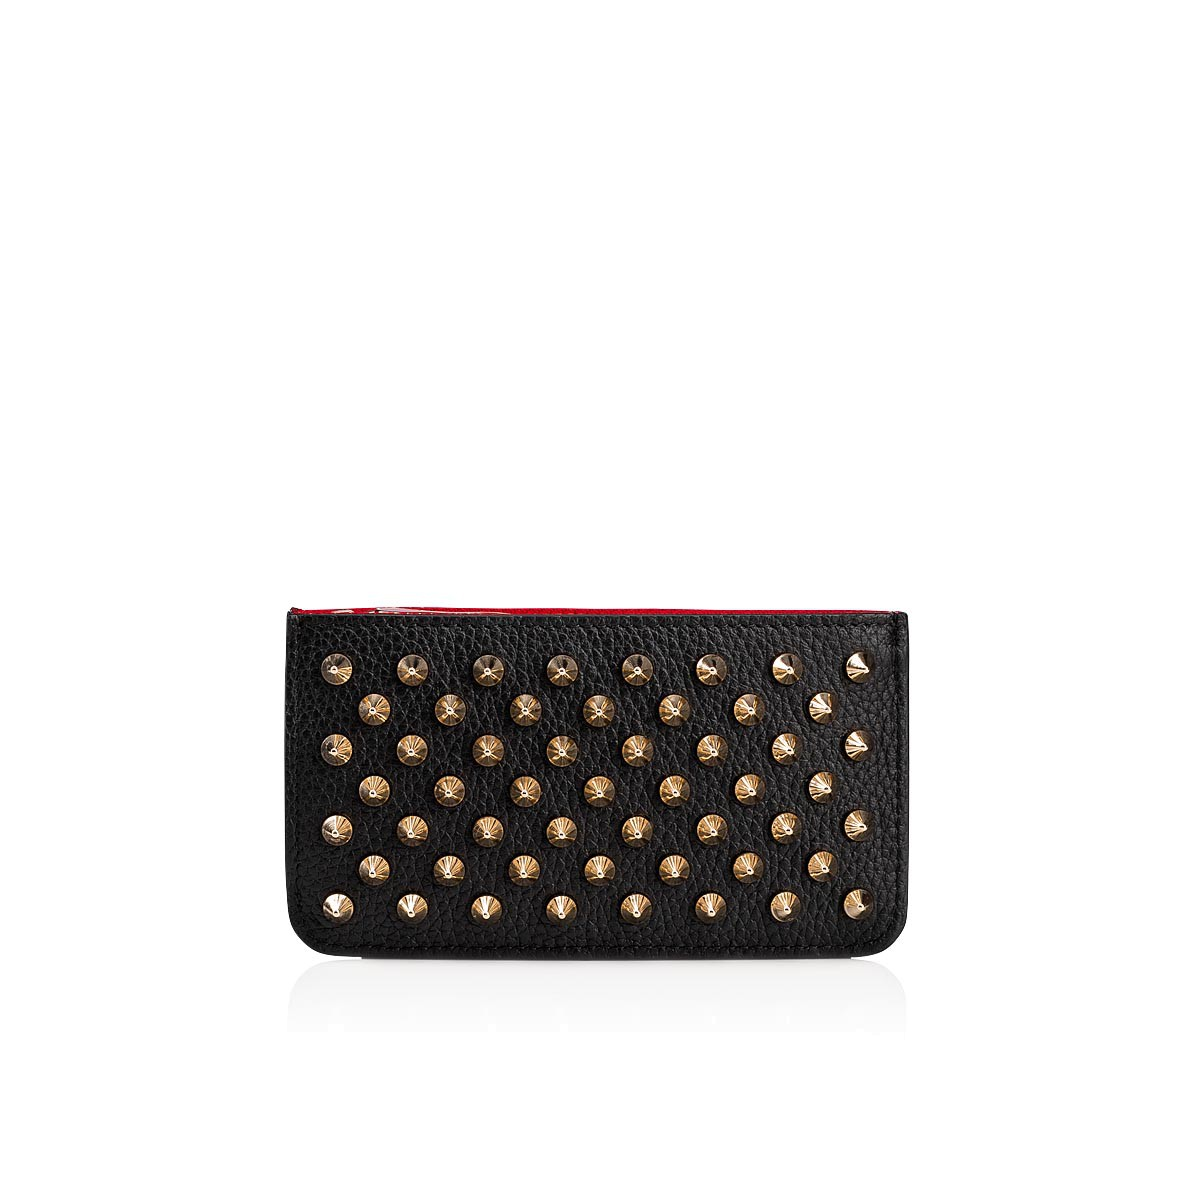 Small Leather Goods - Credilou Cardholder - Christian Louboutin